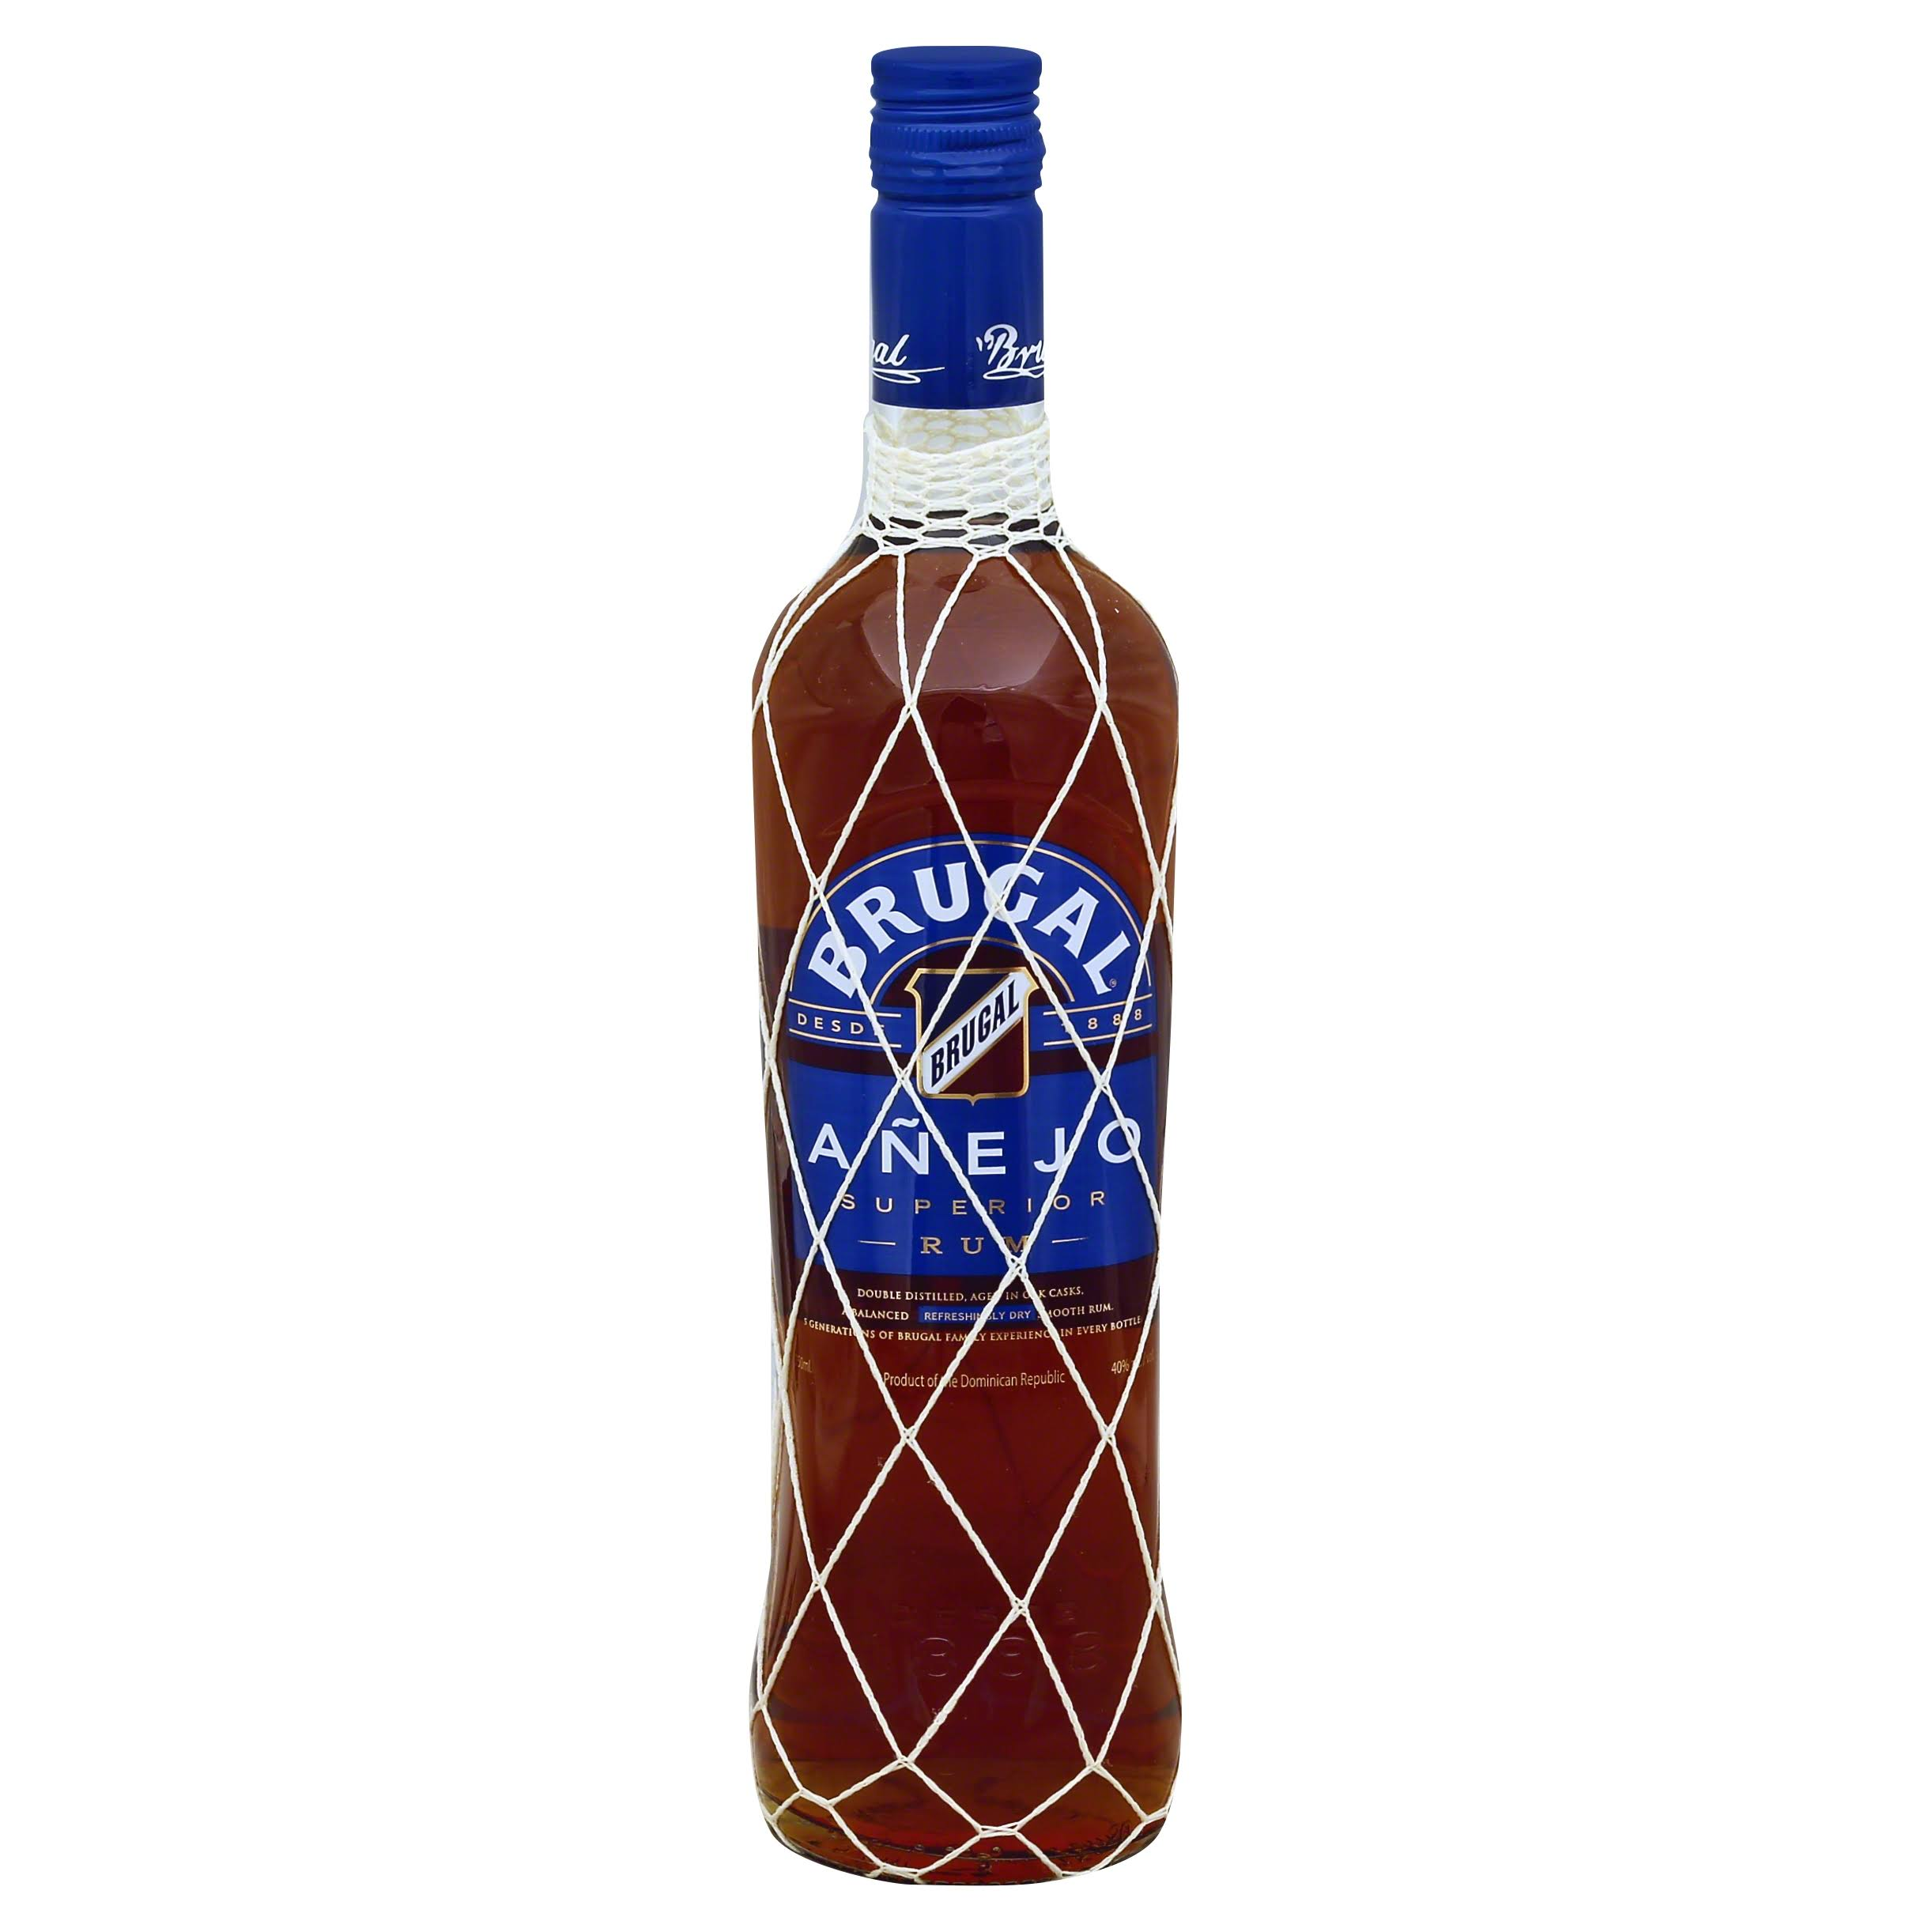 Brugal Anejo Rum - 750 ml bottle